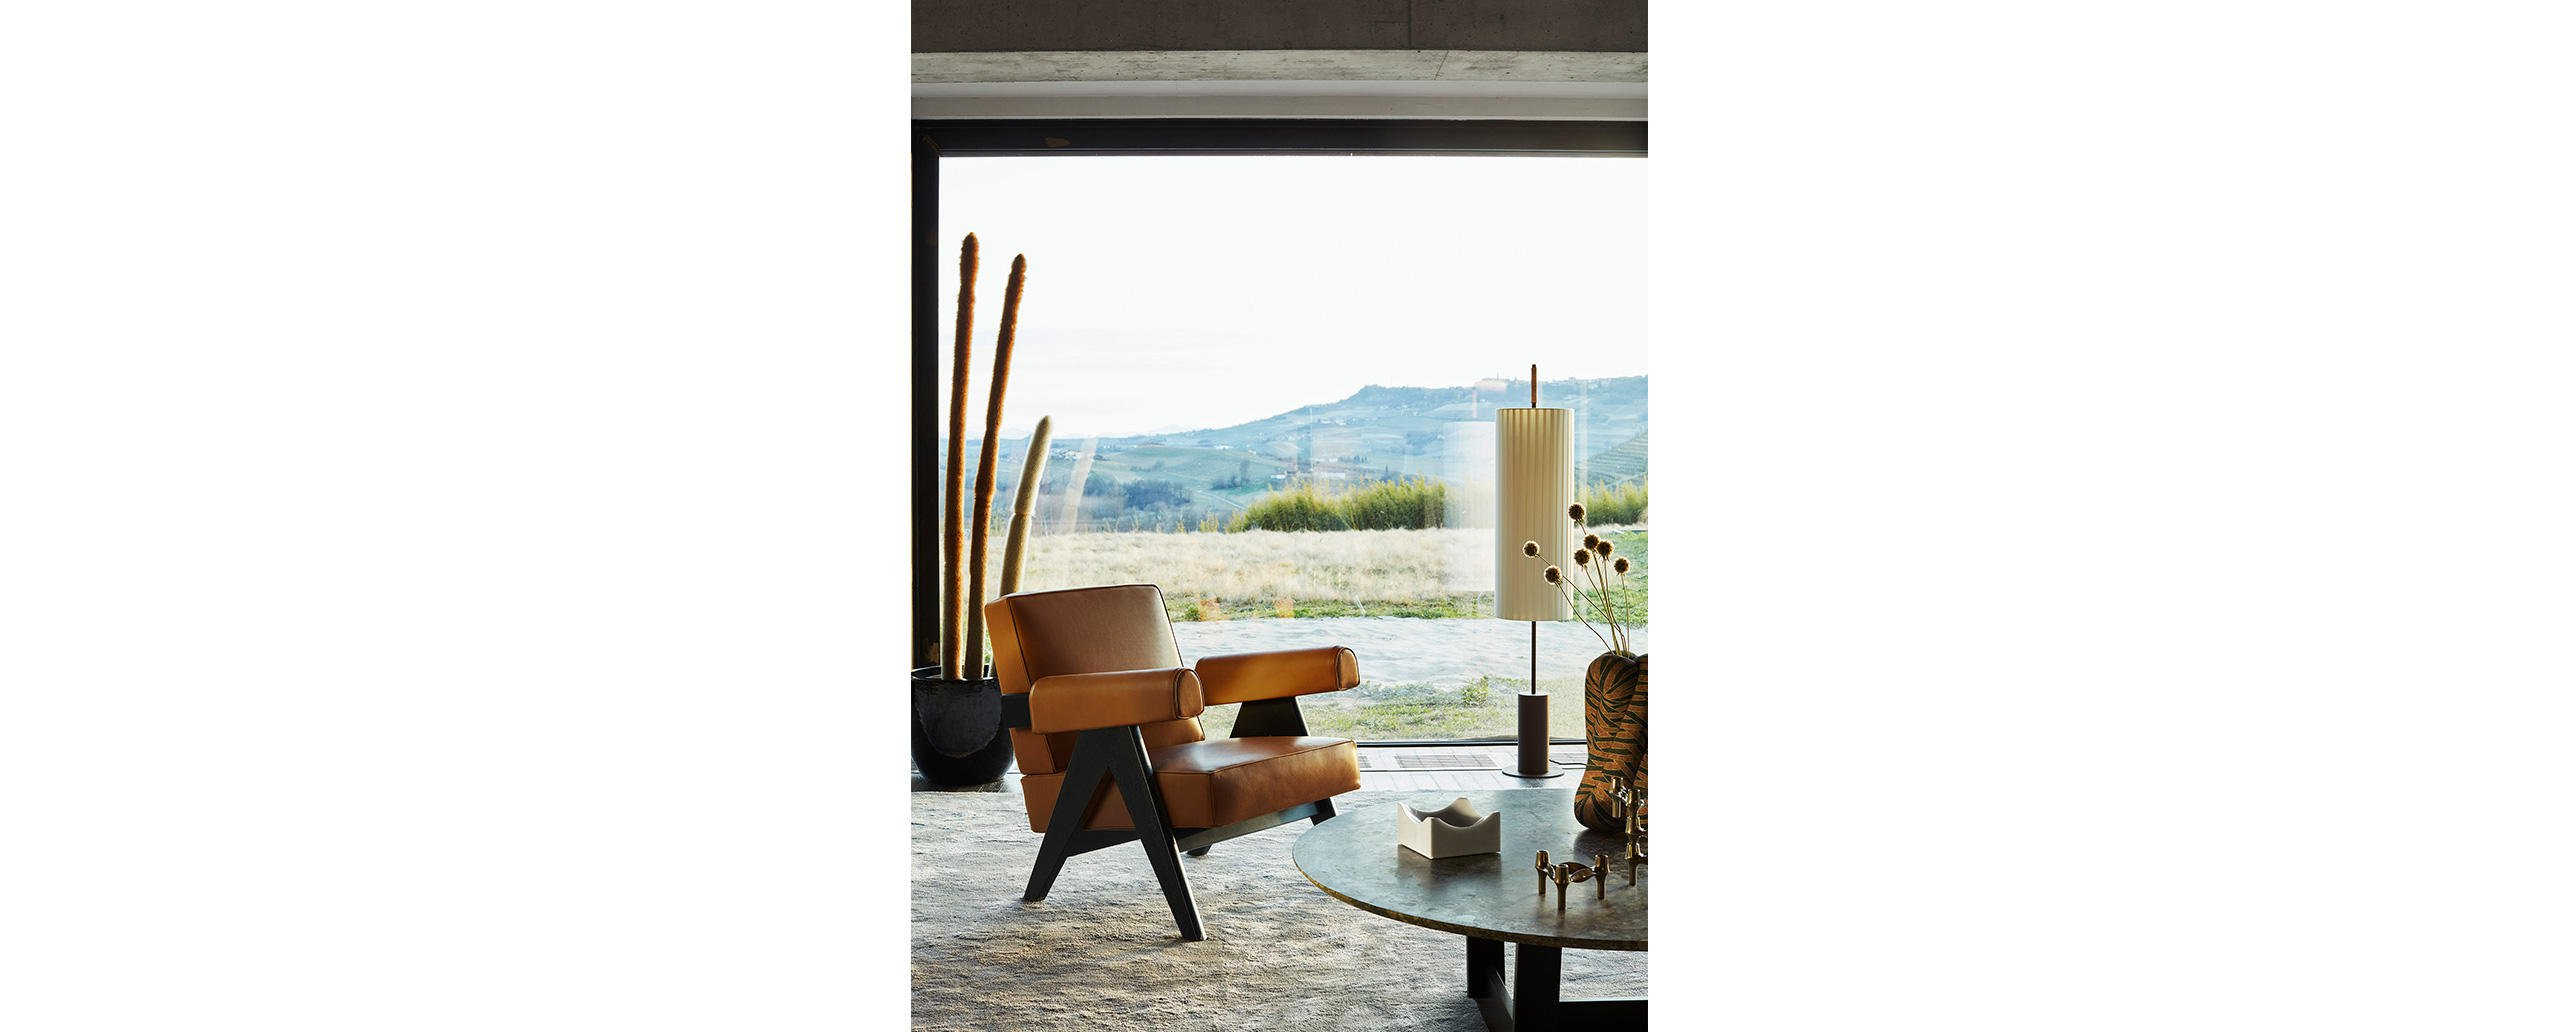 16_cassina_capitol_complex_chair_hommage_o_pierre_jeanneret_cassina_rd_photodepasqualemaffini